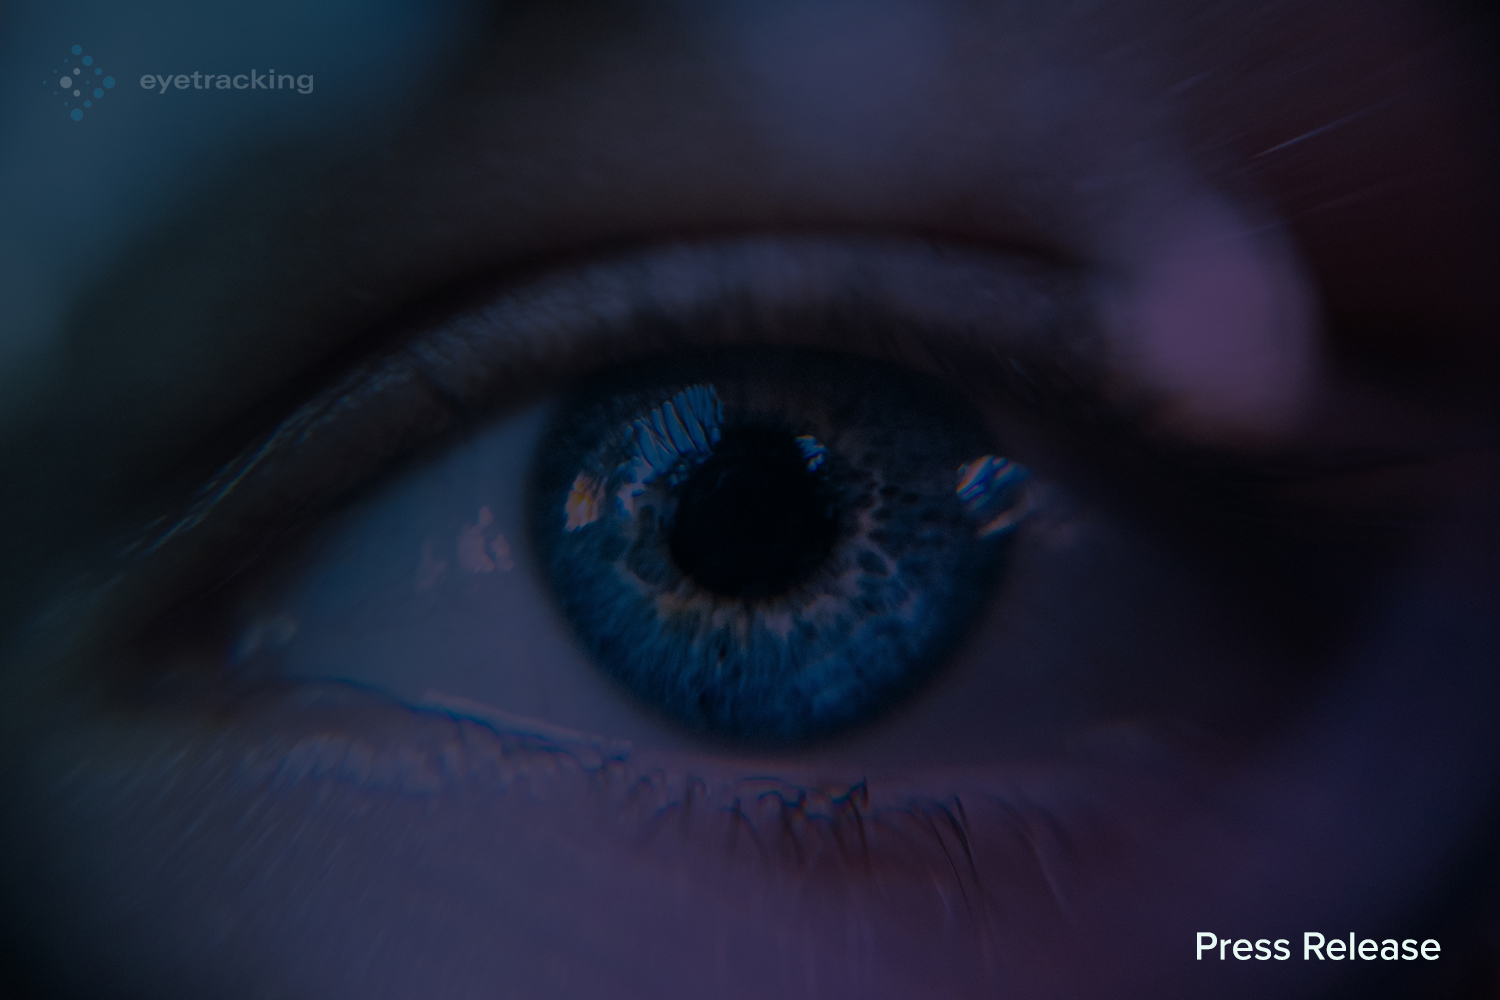 EyeTracking Press Release cover image